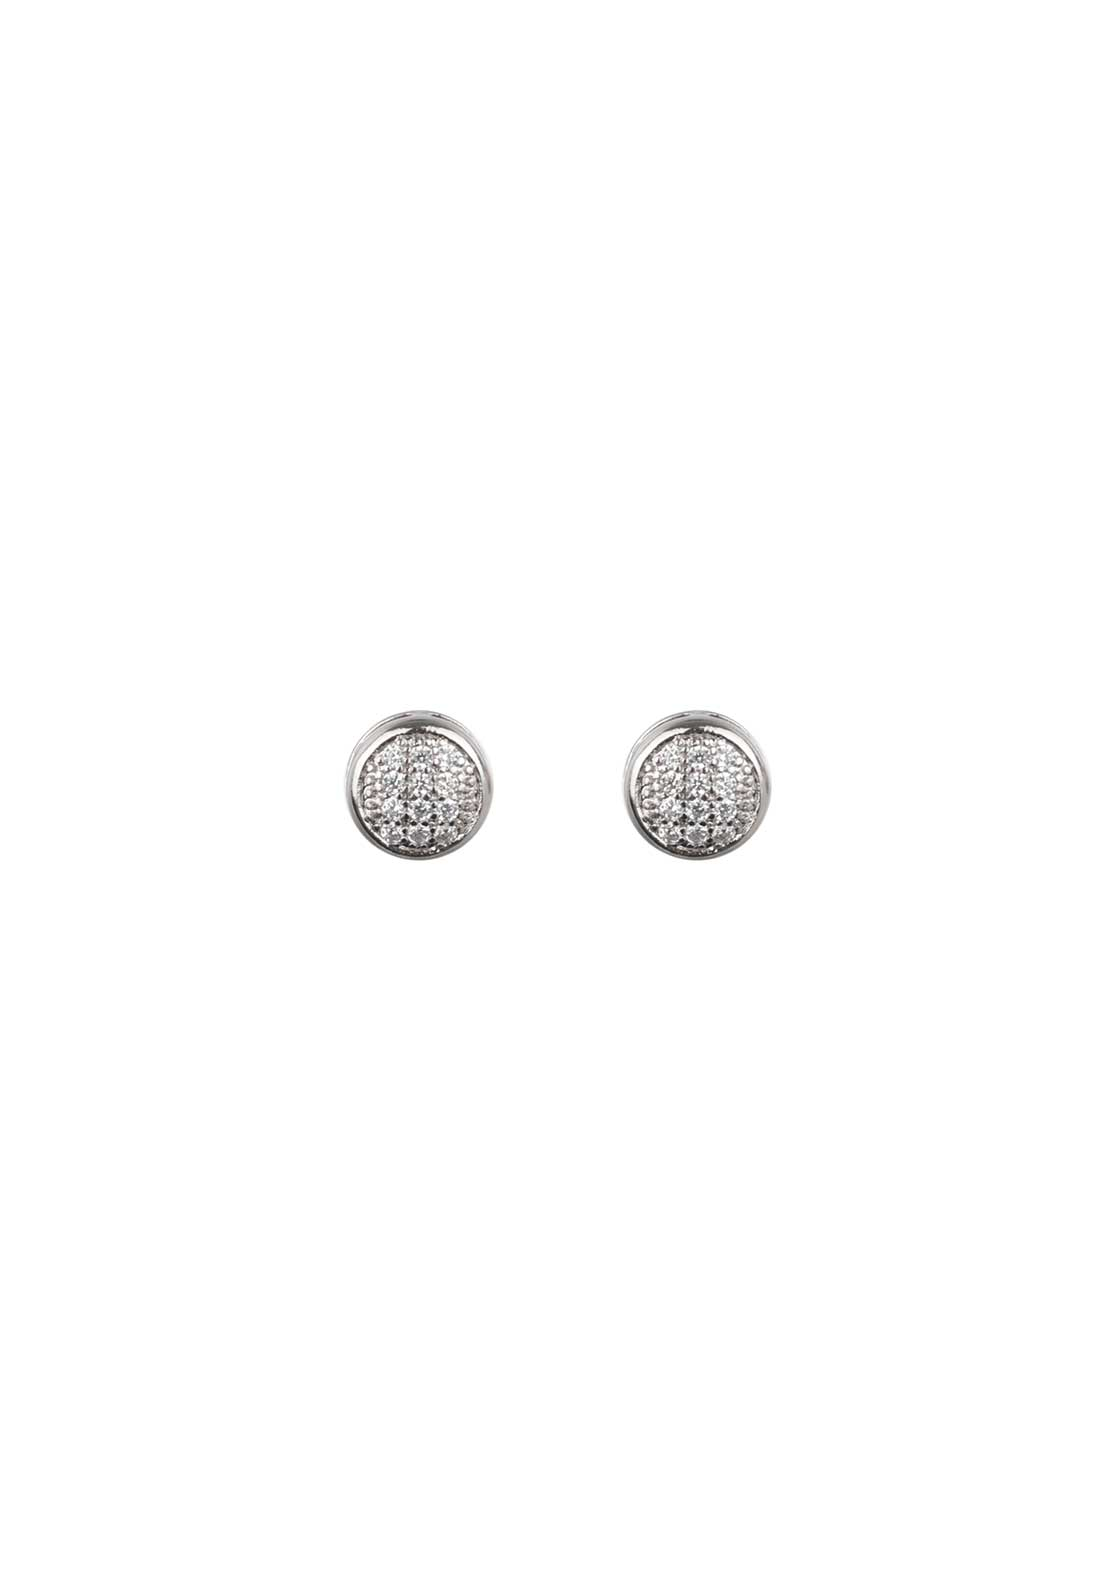 Absolute Jewellery Girls Small Pave Stud Earrings, Silver